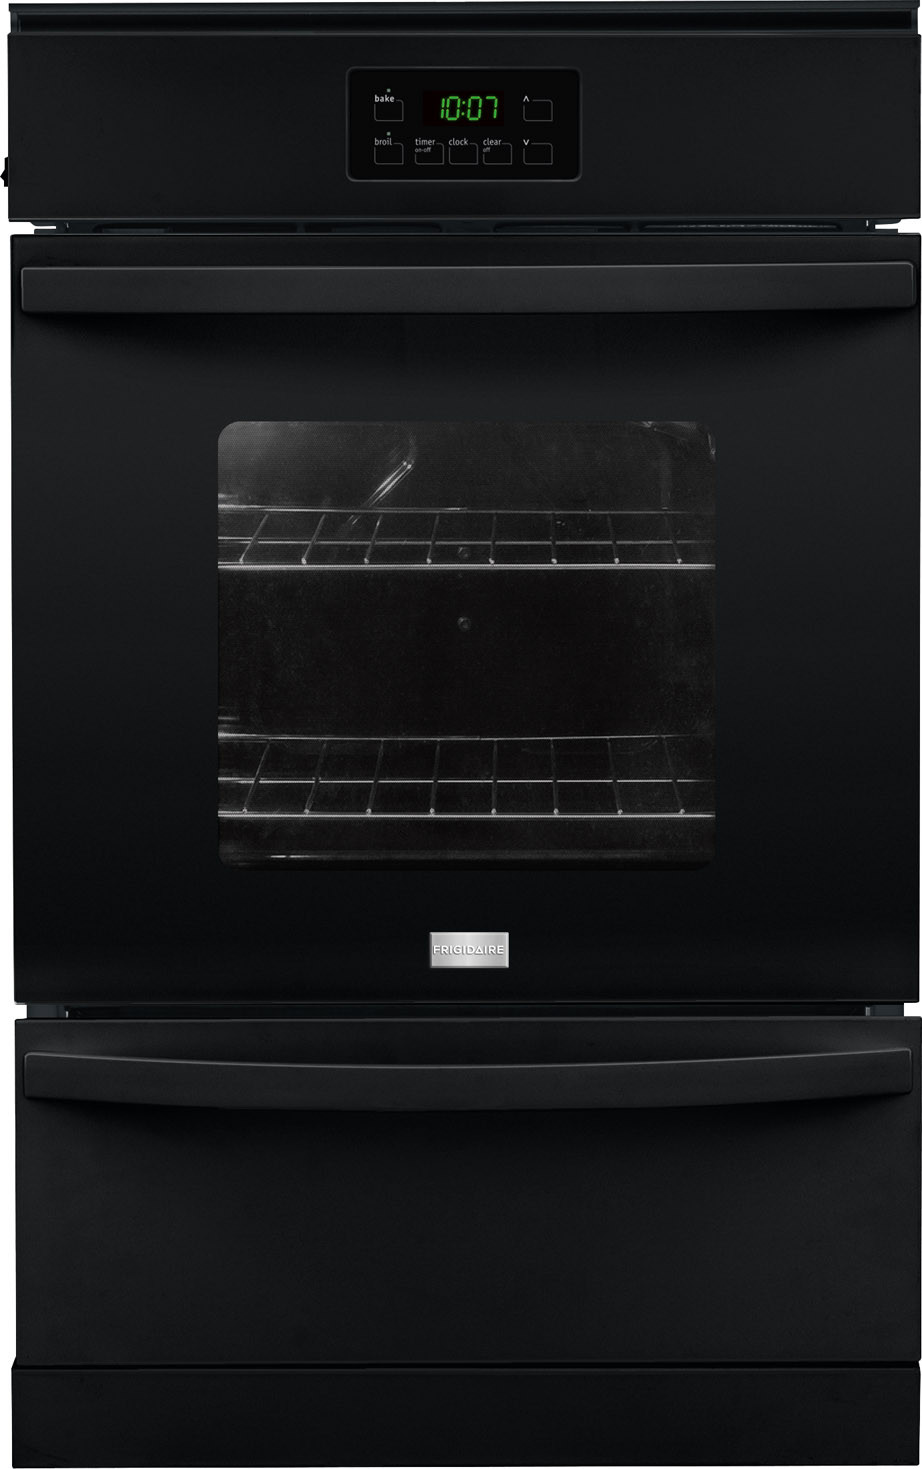 24 inch built in oven microwave combo - 24 Inch Built In Oven Microwave Combo 50